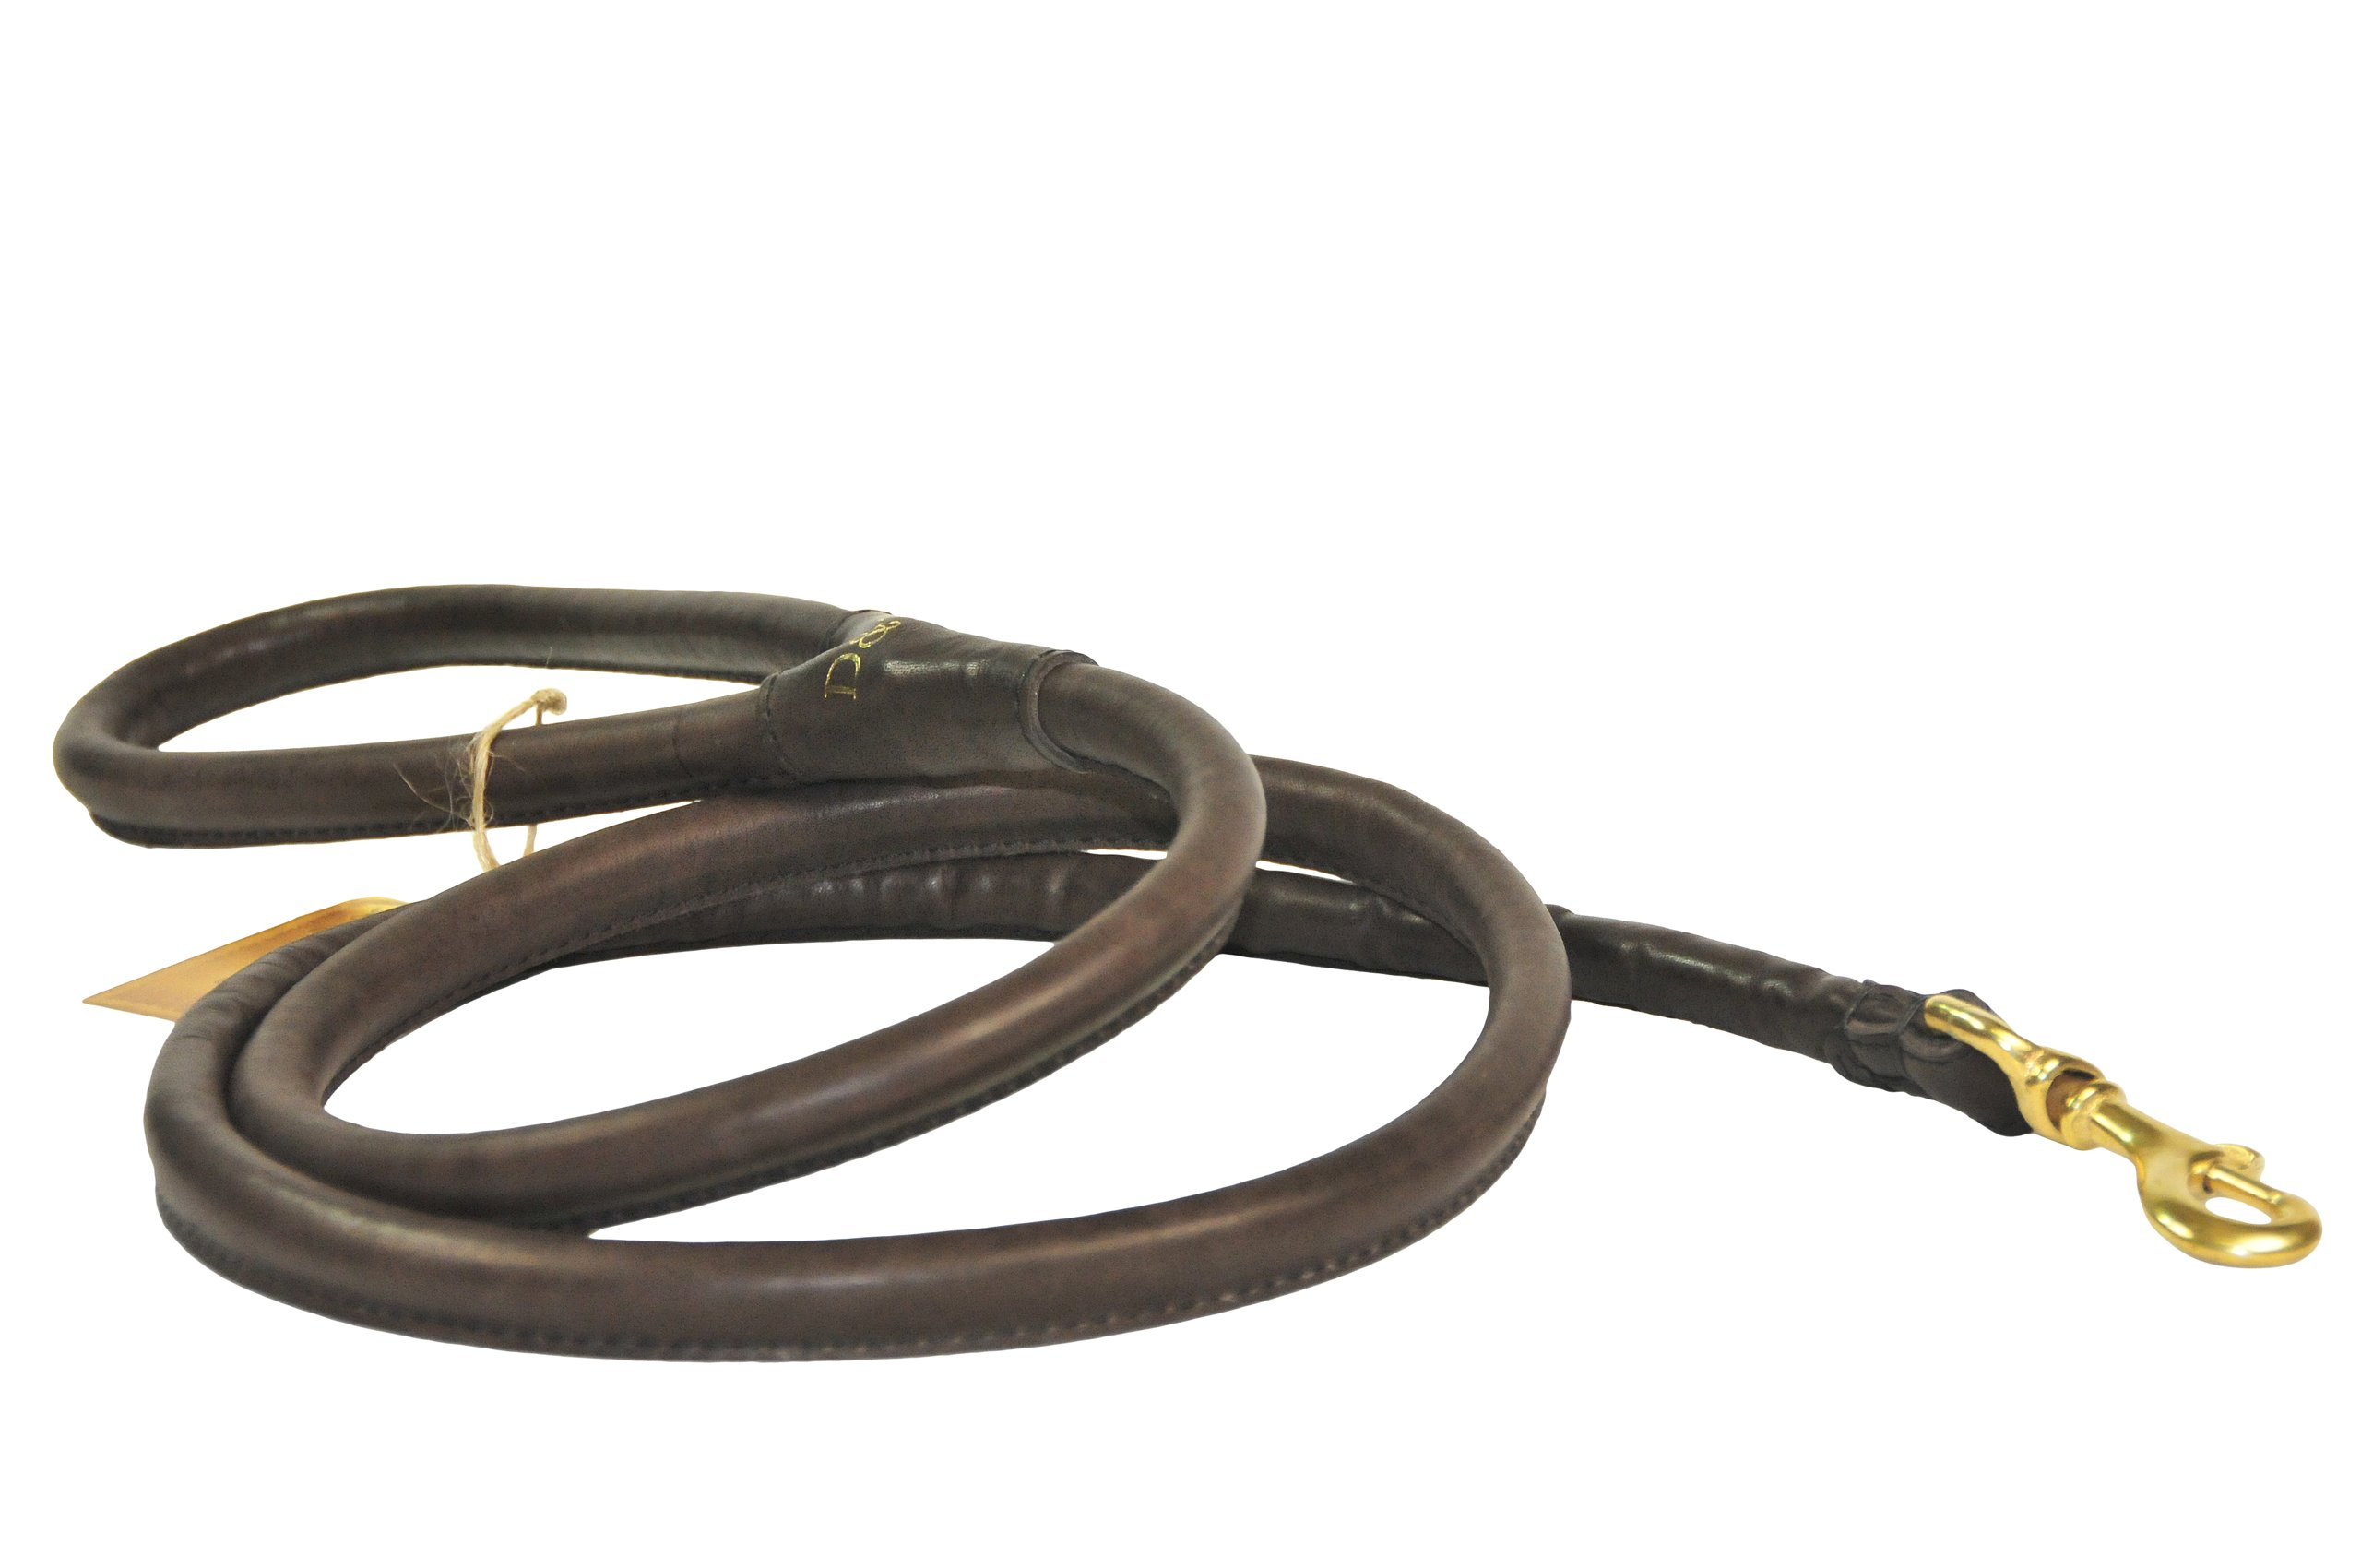 Dean and Tyler Tamed Beauty Rolled Leash, Brown 2-Feet by 1/2-Inch Diameter With Handle And Solid Brass Hardware.